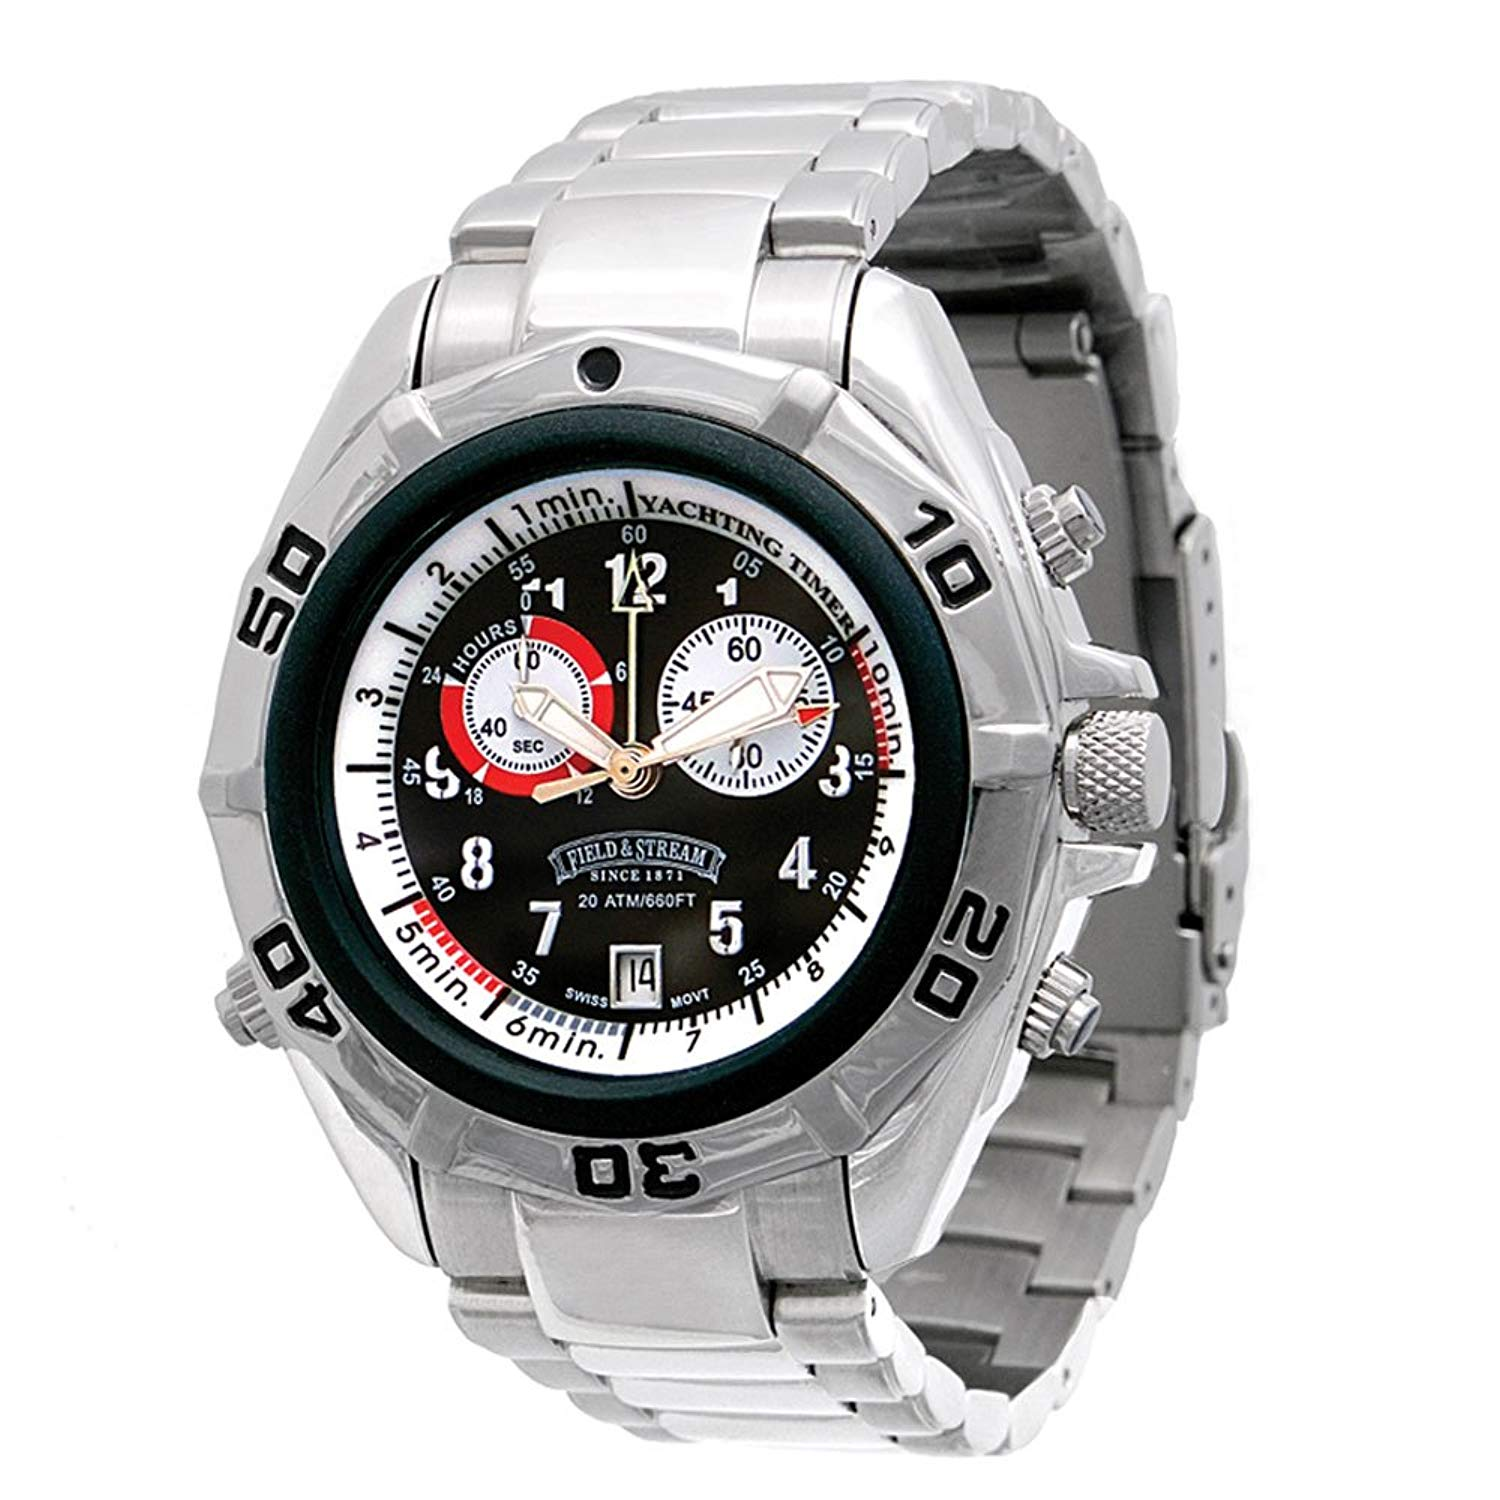 ab9219b82893 Get Quotations · Field   Stream Men s F185GKBSY Yachtsman Chronograph  Multi-Function Watch